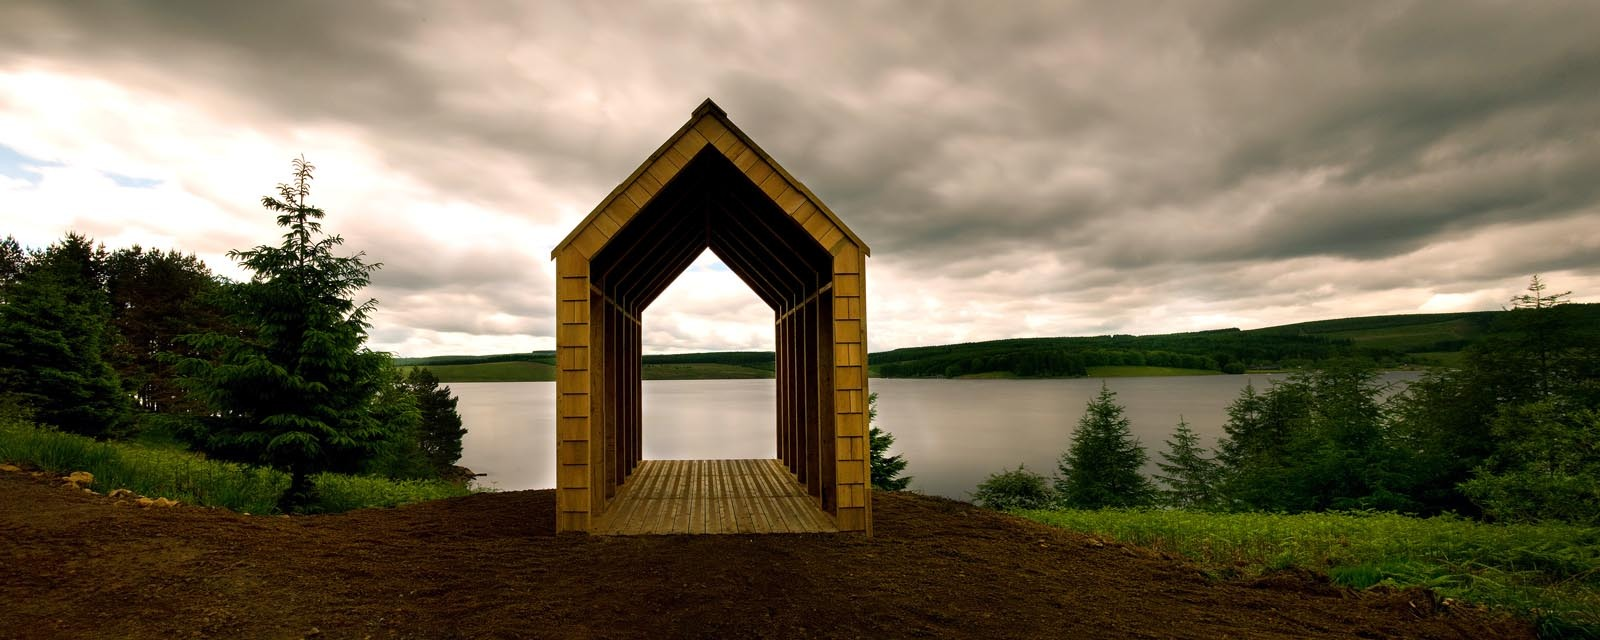 "...and Robin's Hut – ""(Robin) liked climbing trees and building wooden houses for birds..."" – ""physical manifestations of a love story embedded in the landscape"" of Kielder Water and Forest Park. (Photo courtes"